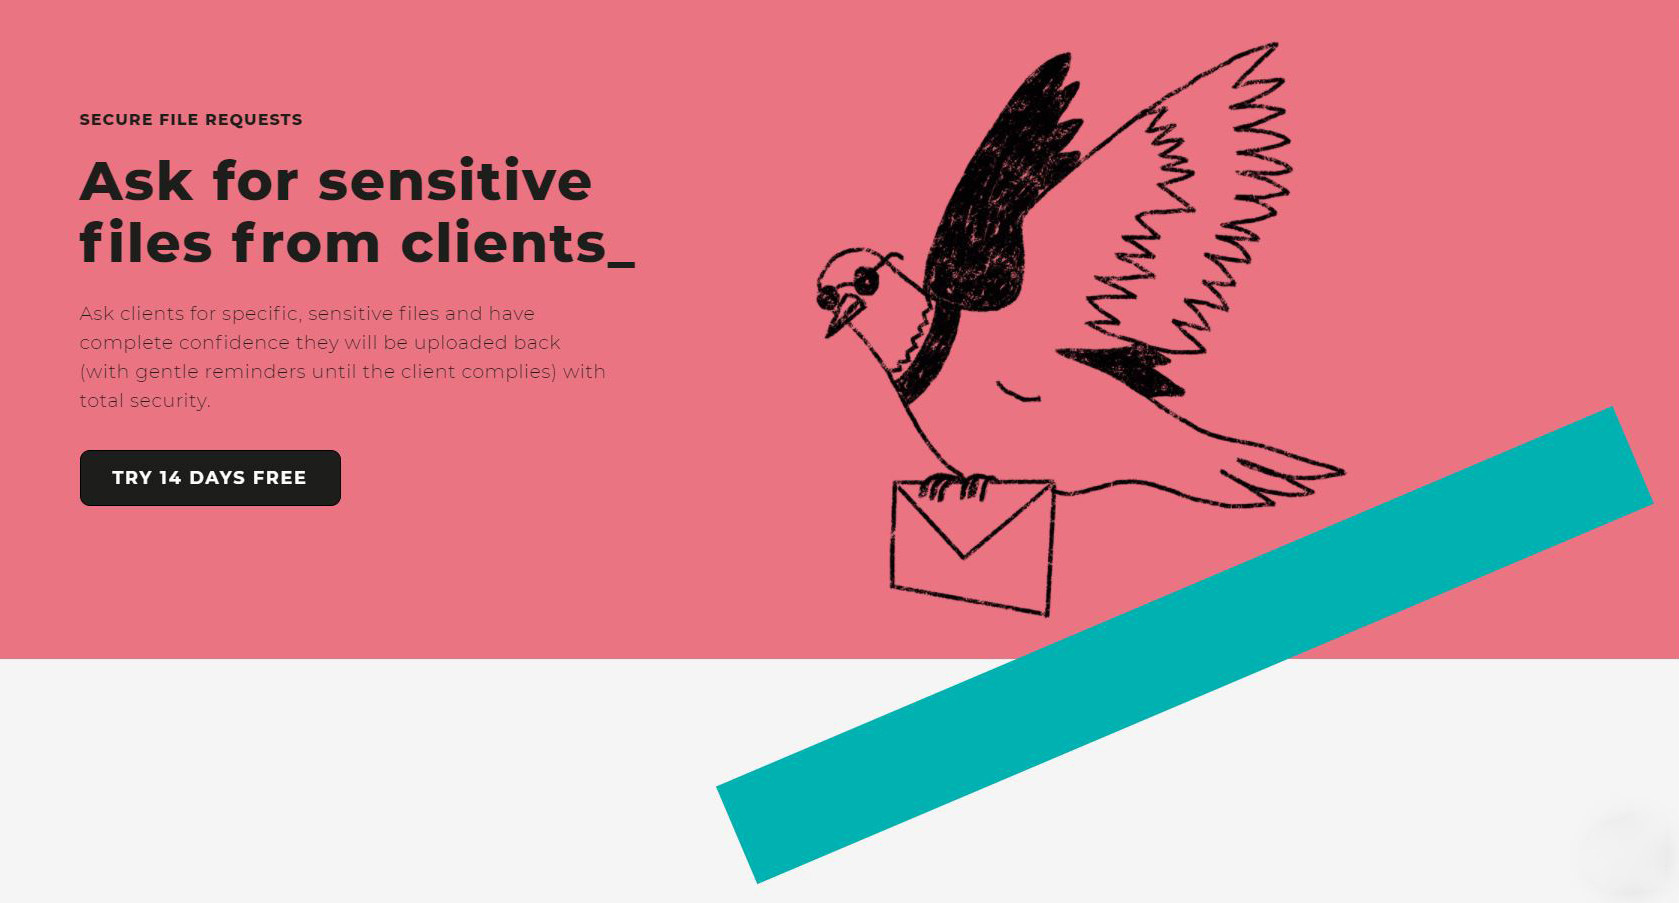 Ask for sensitive files from clients